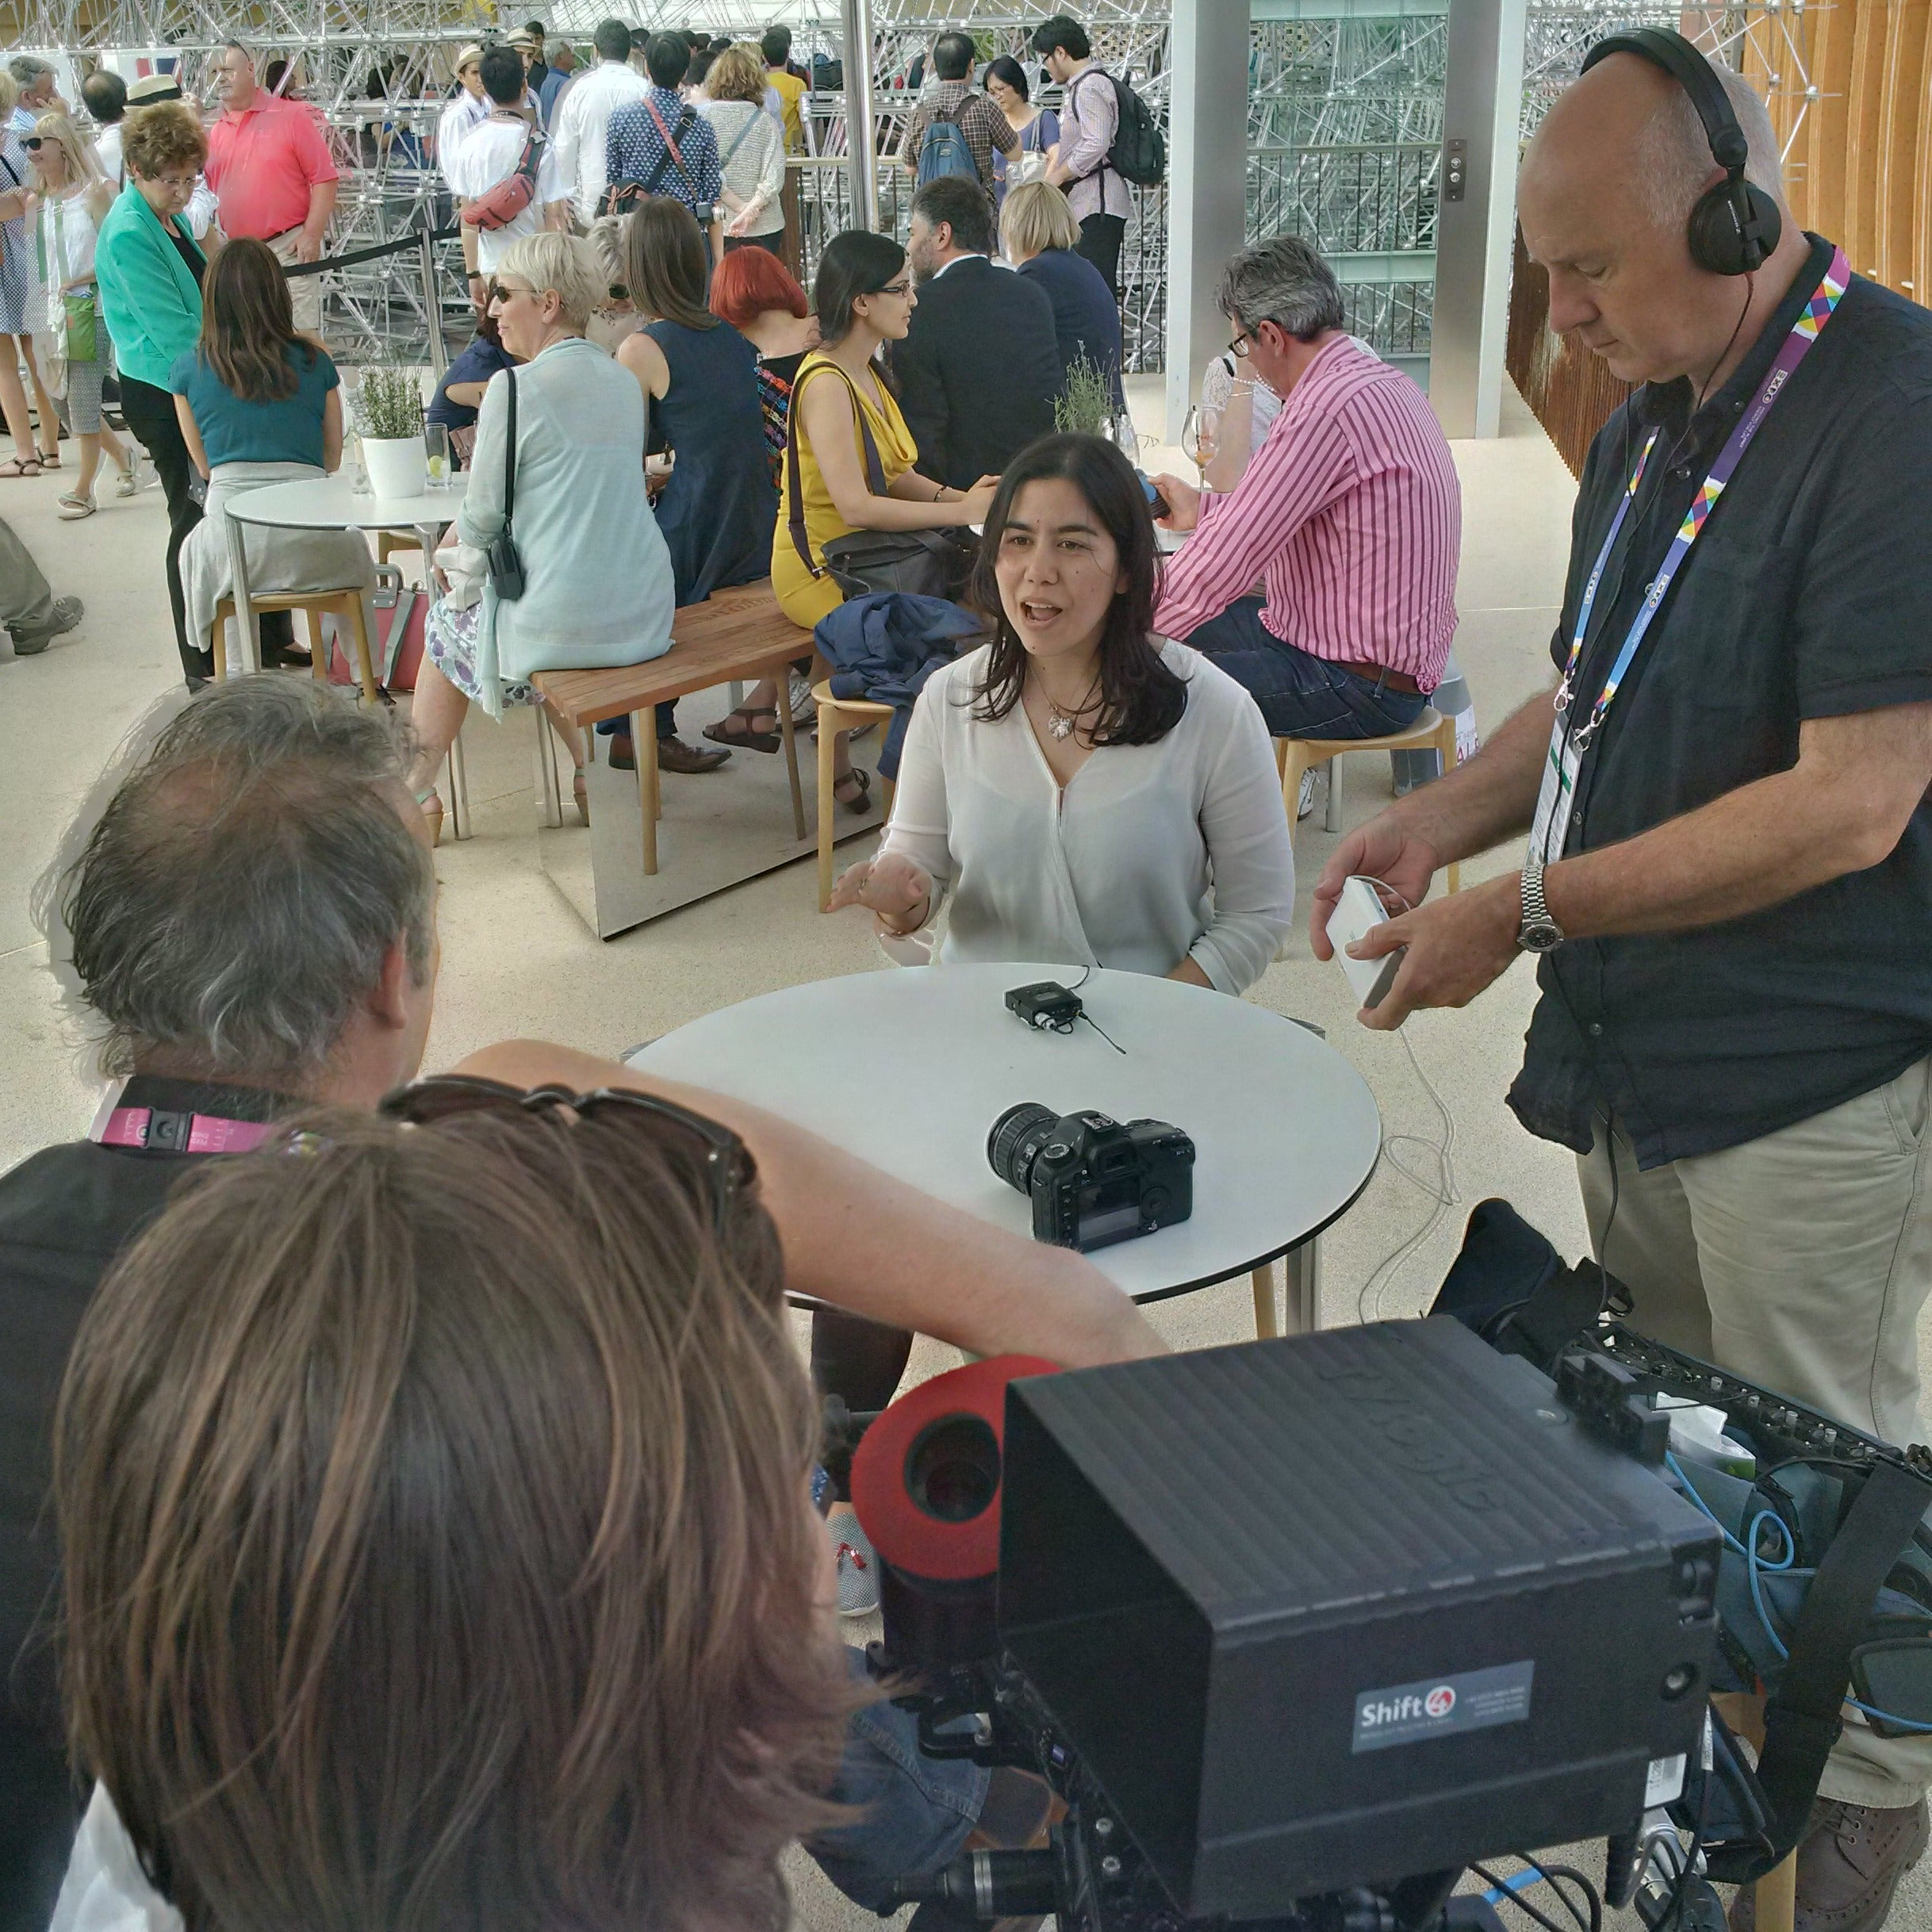 Janan being interviewed about her views on entrepreneurship today, at the Milan Expo 2015